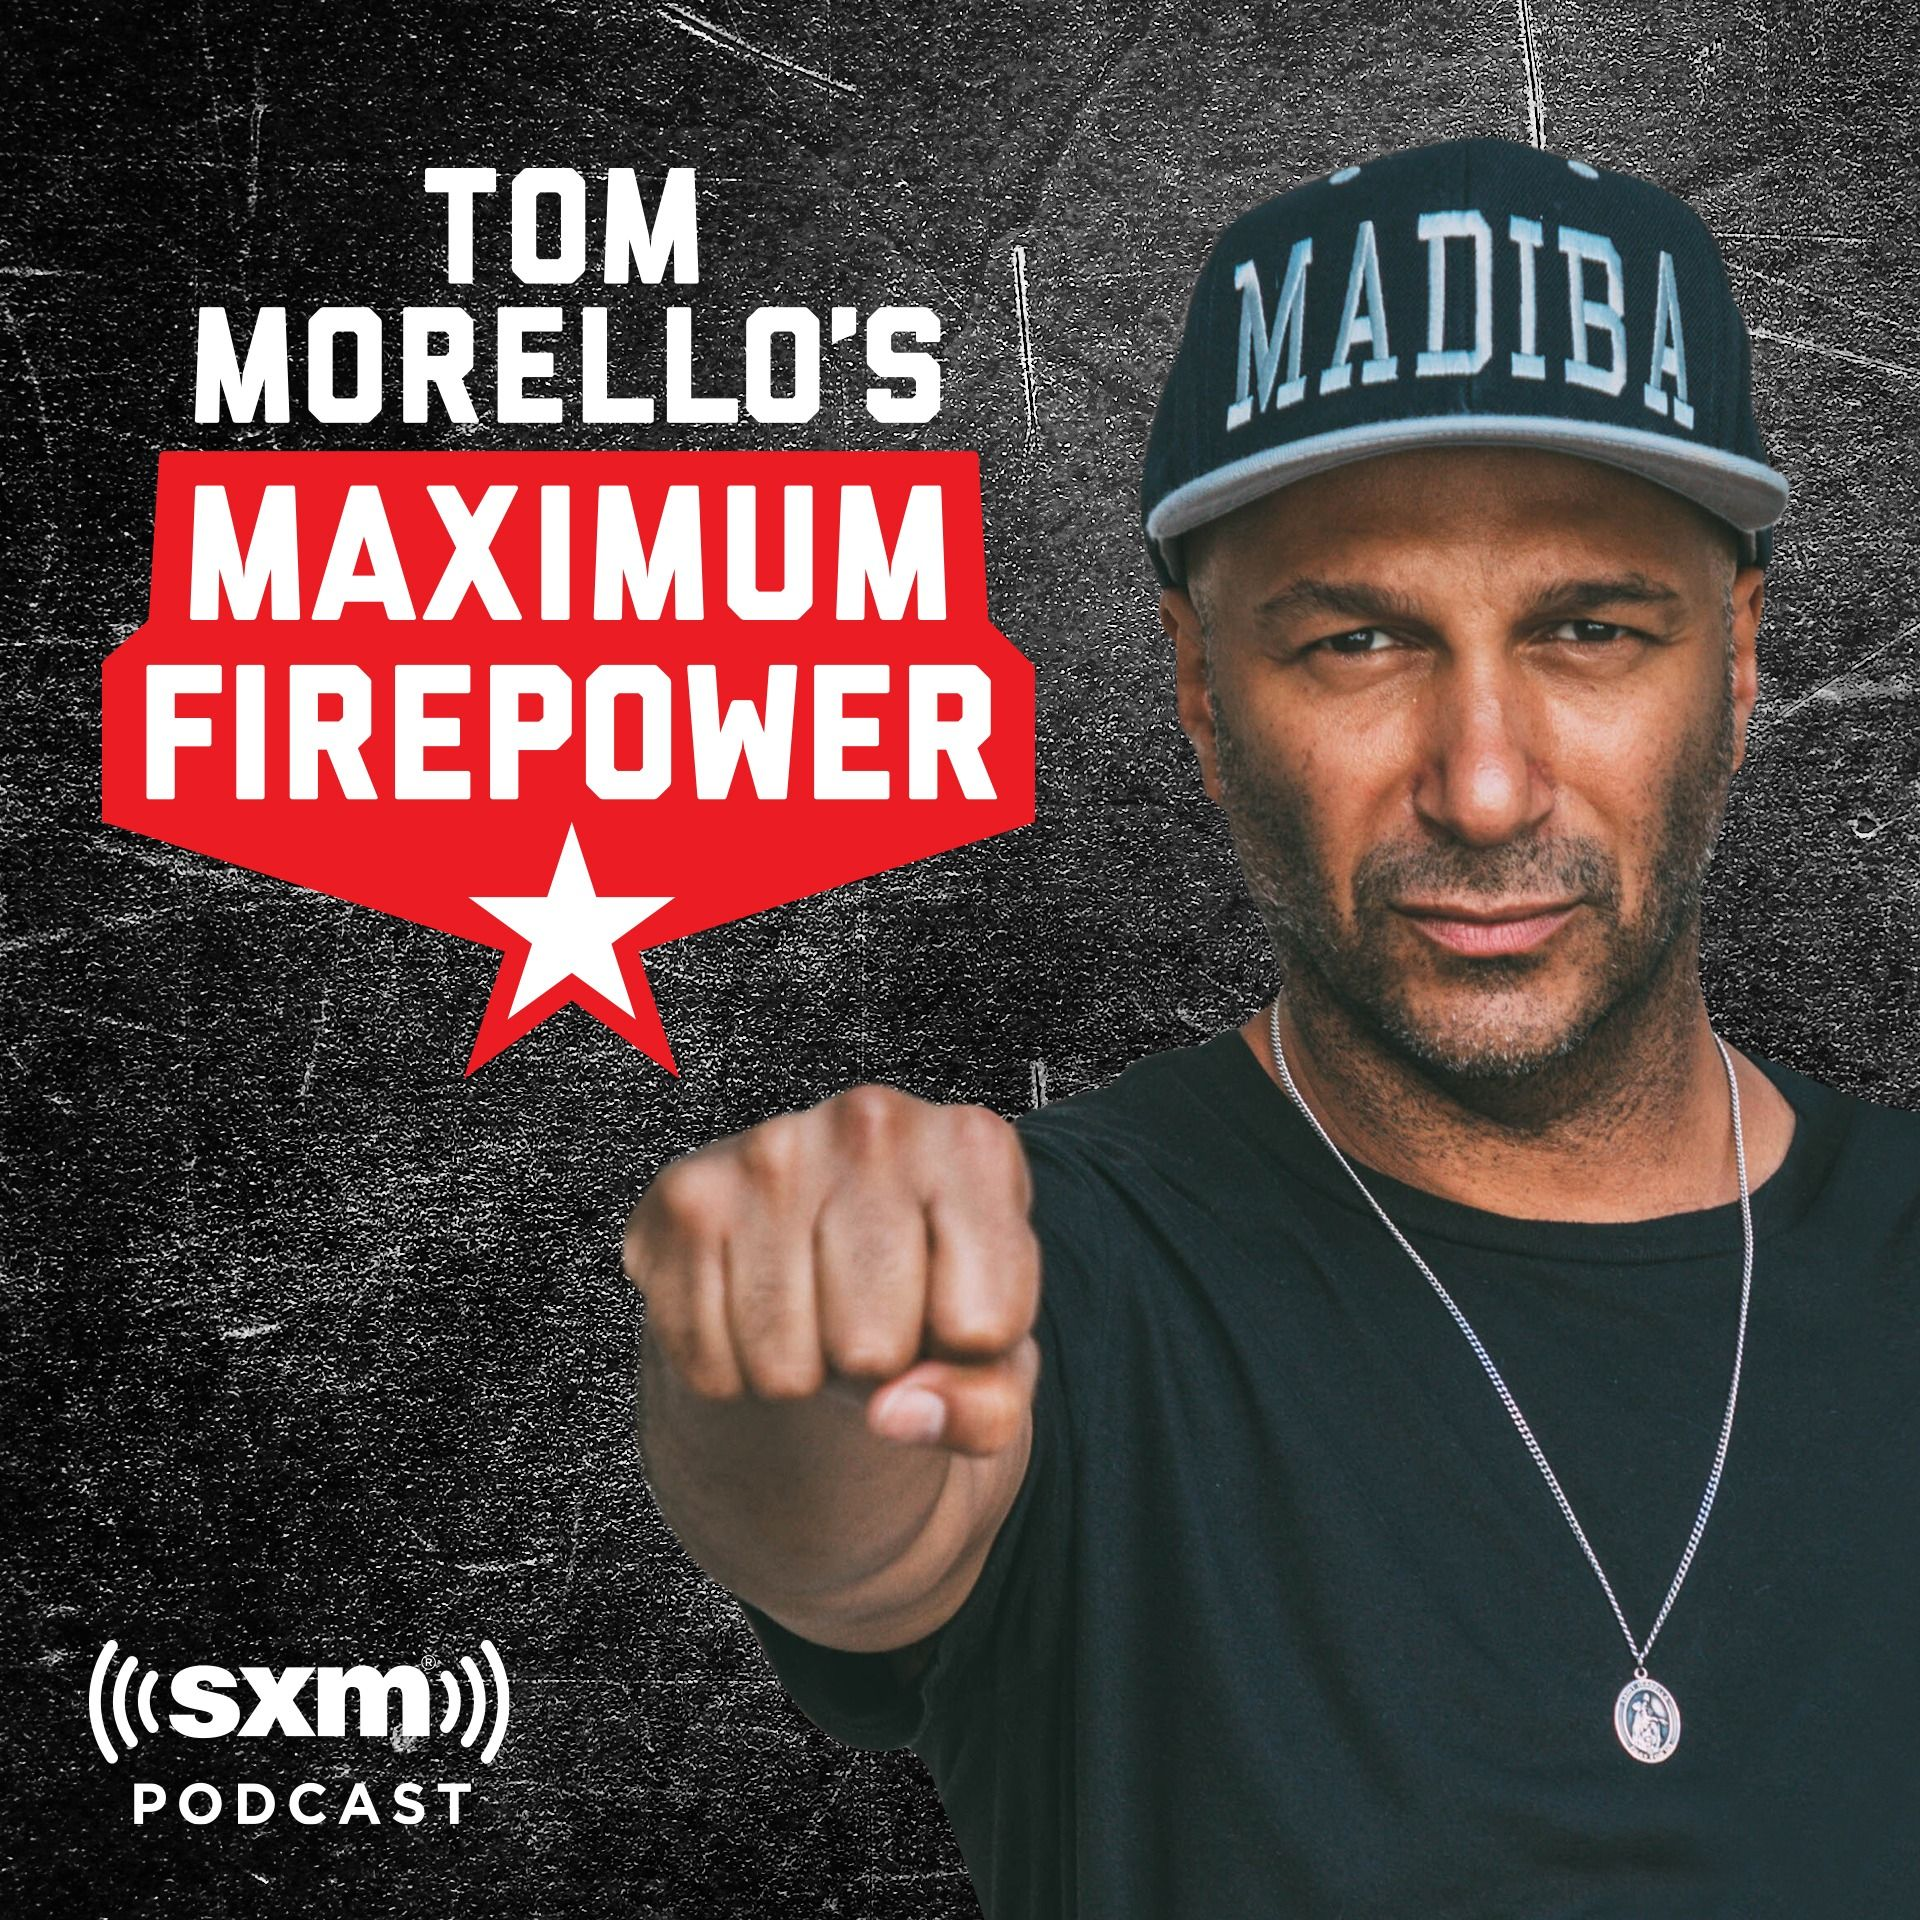 Tom Morello's Maximum Firepower